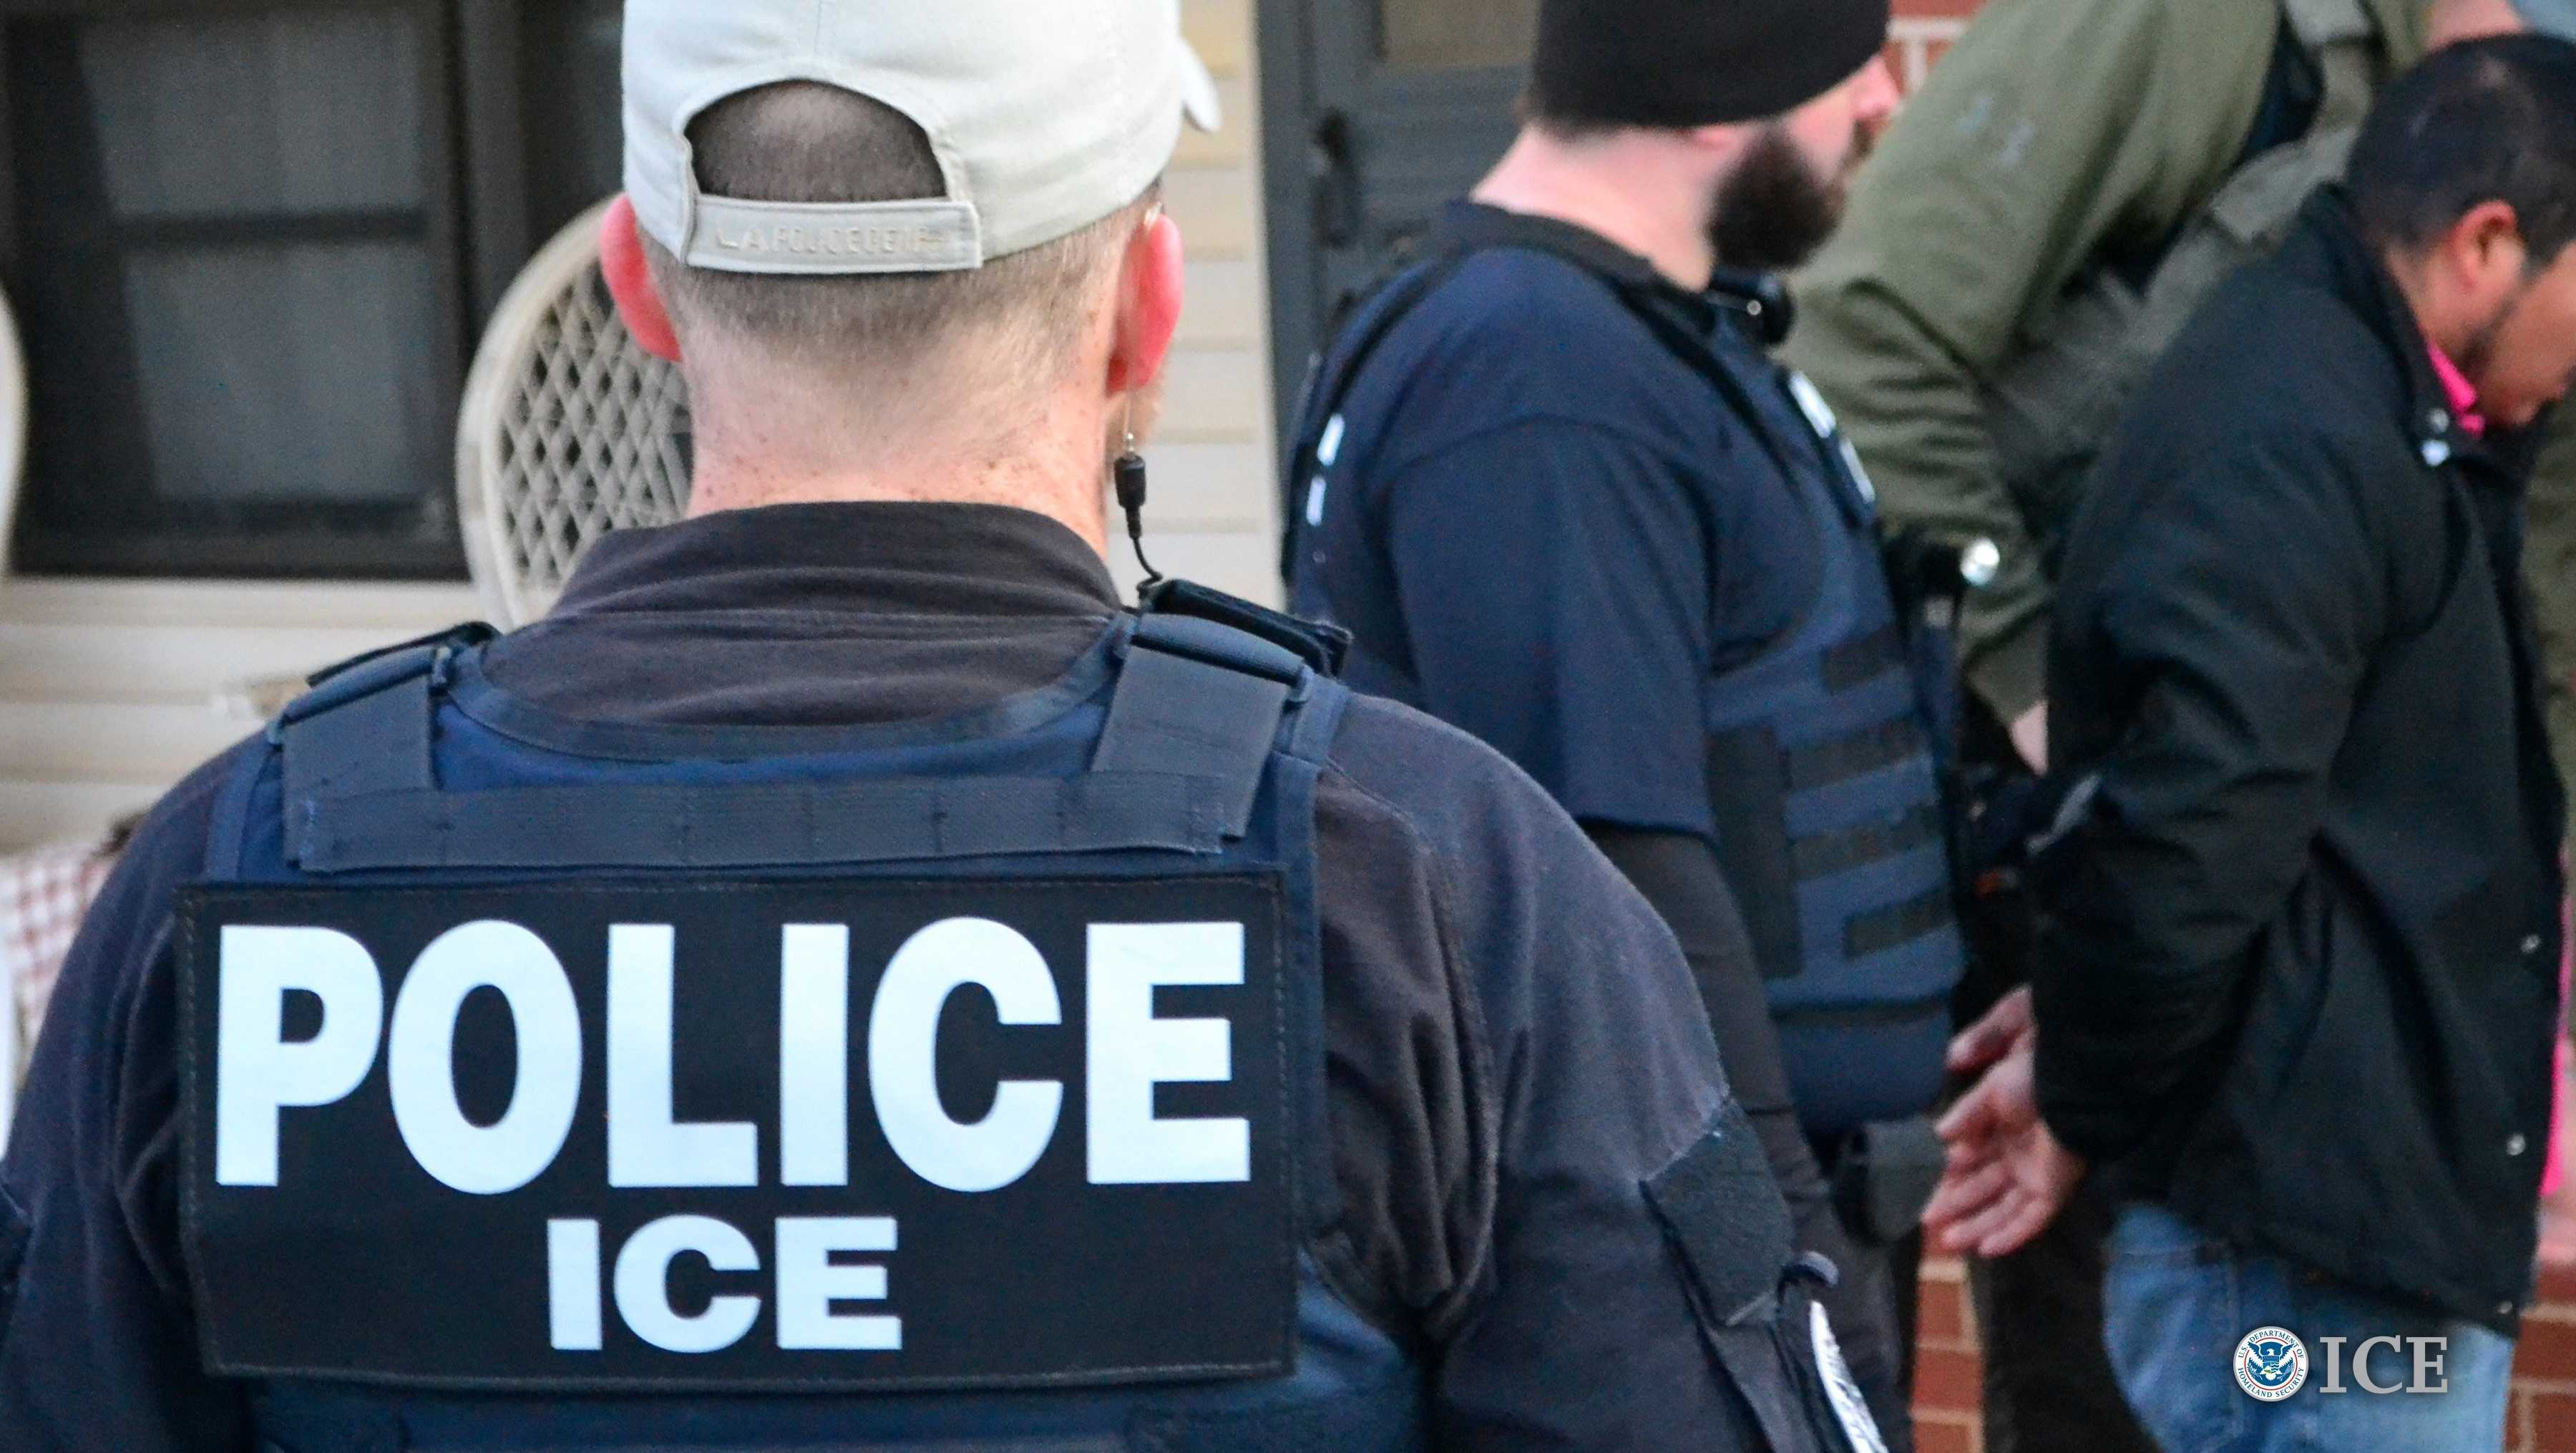 oreign nationals were arrested during the week of February 6, 2017, during a targeted enforcement operation conducted by U.S. Immigration and Customs Enforcement (ICE) aimed at immigration fugitives, re-entrants and at-large criminal aliens.